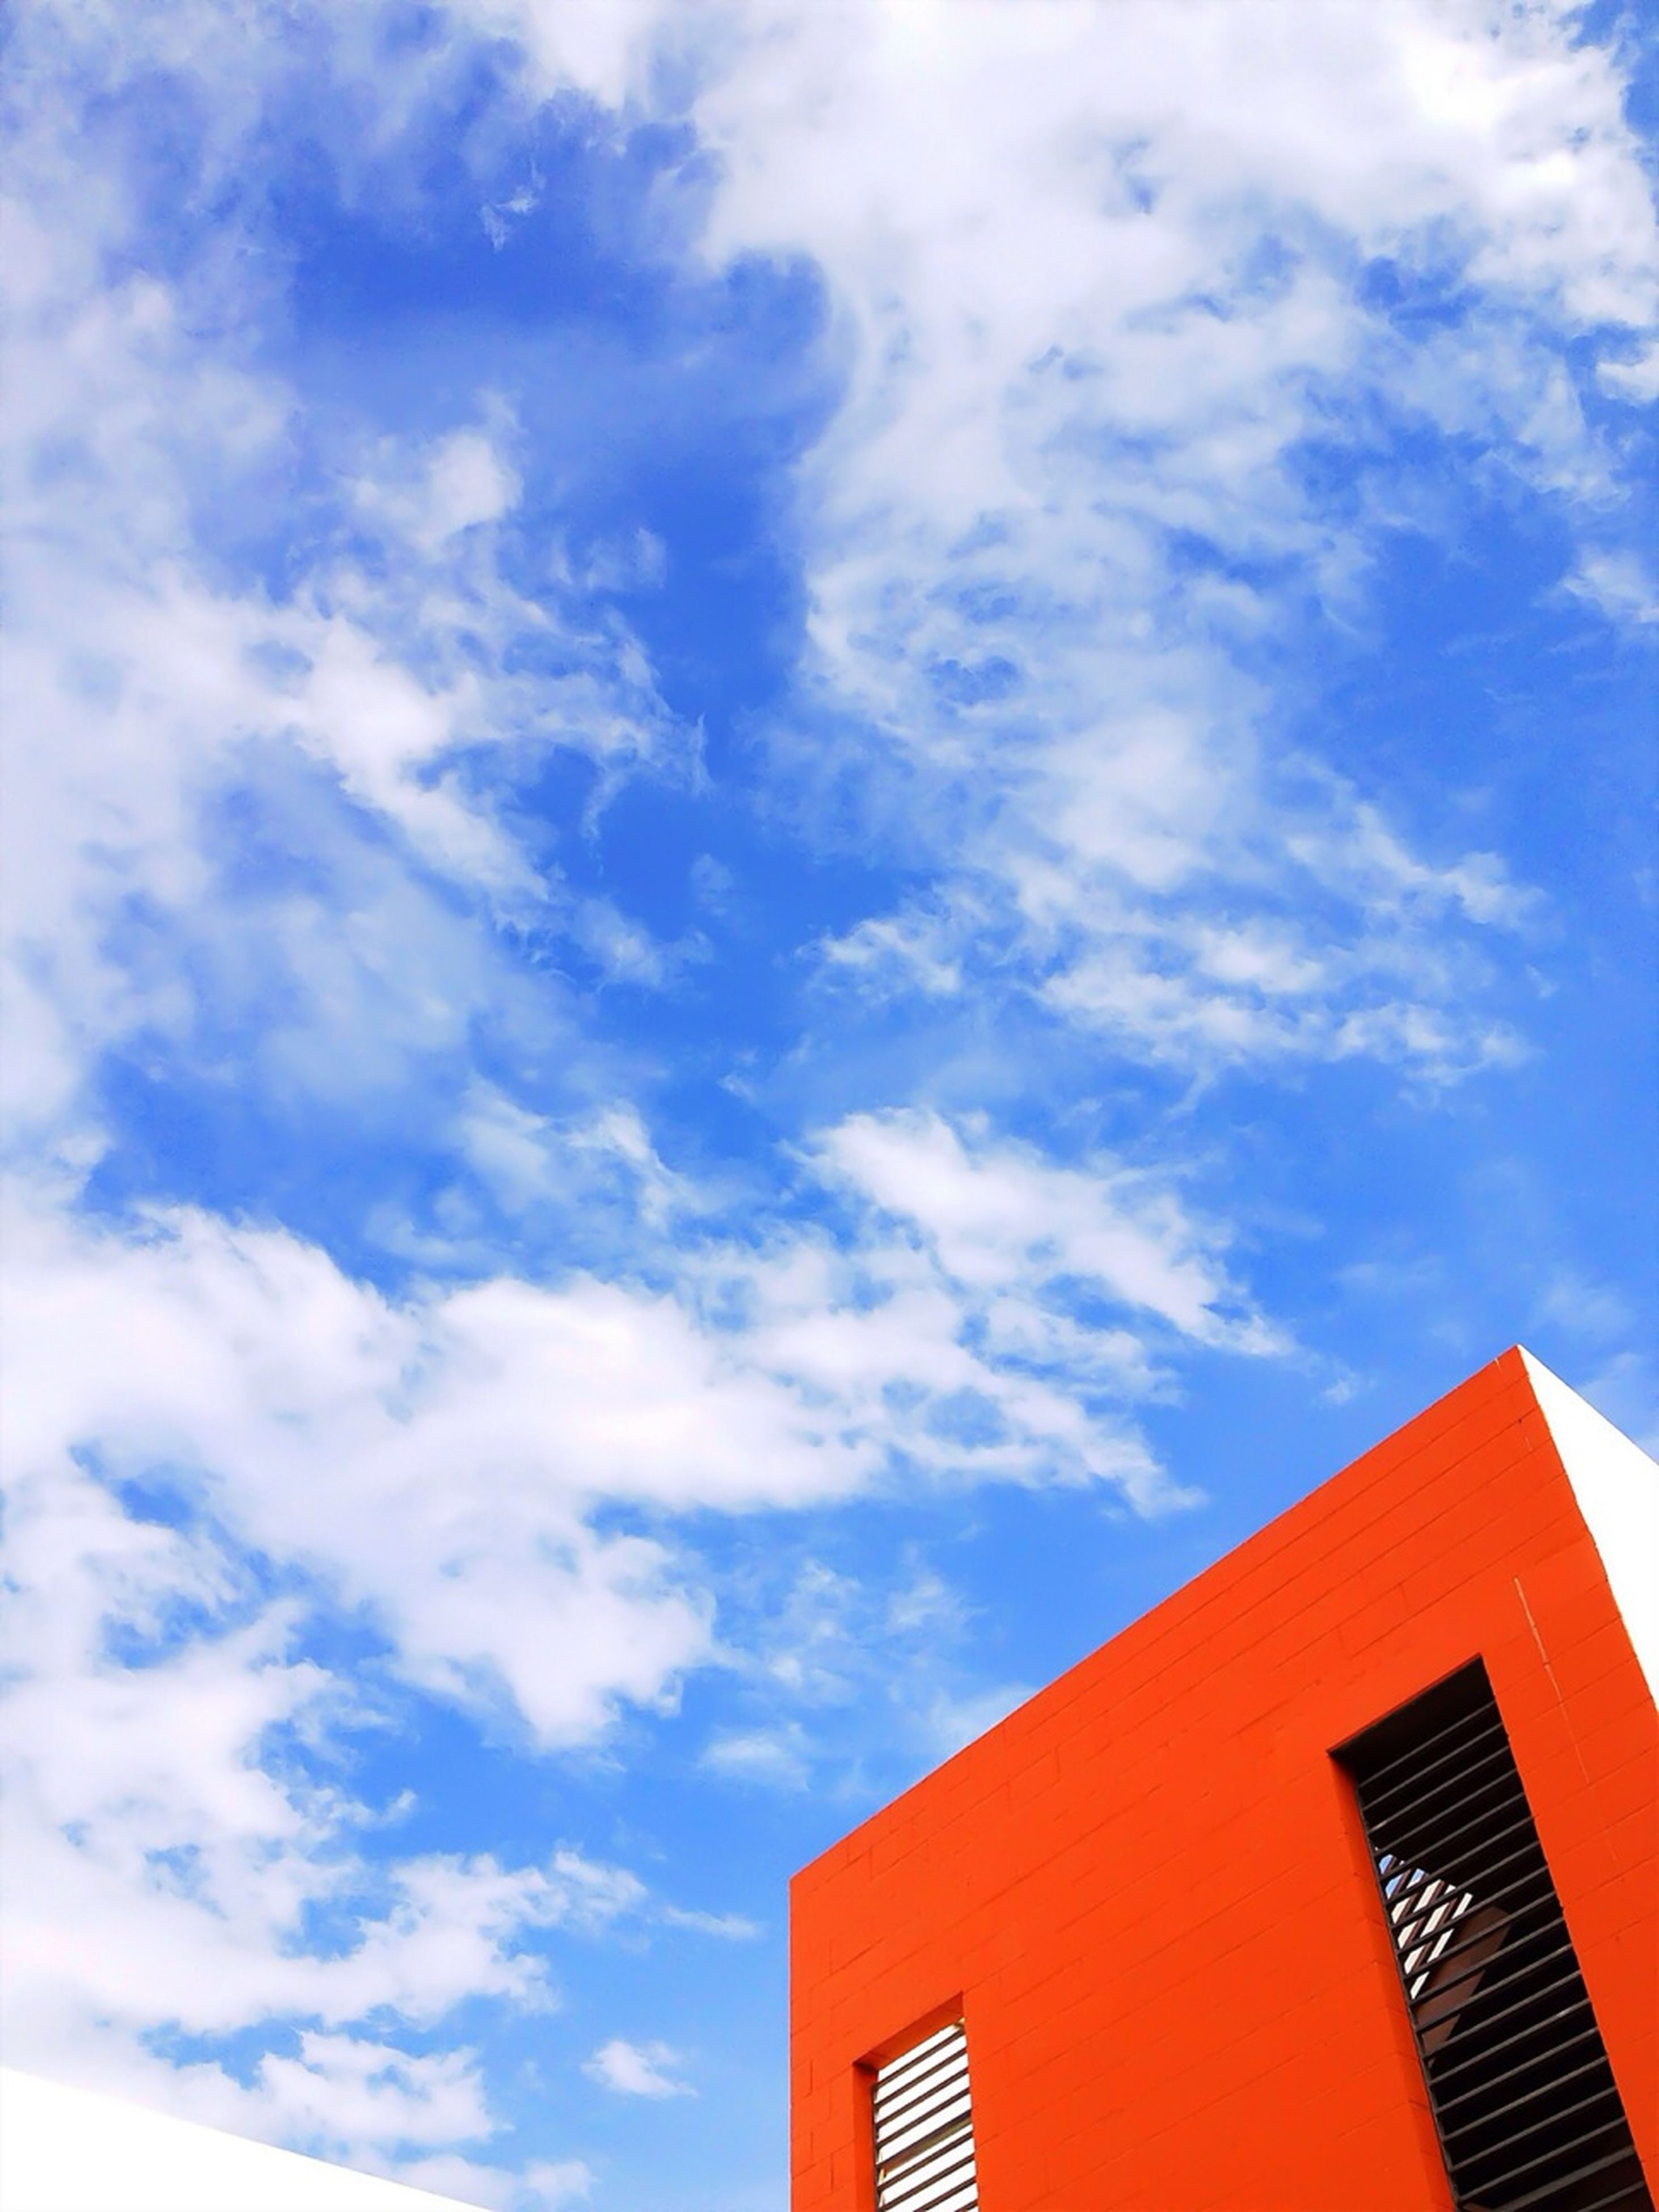 building exterior, architecture, low angle view, built structure, sky, cloud - sky, high section, cloud, residential structure, house, cloudy, residential building, blue, outdoors, building, window, day, no people, city, nature